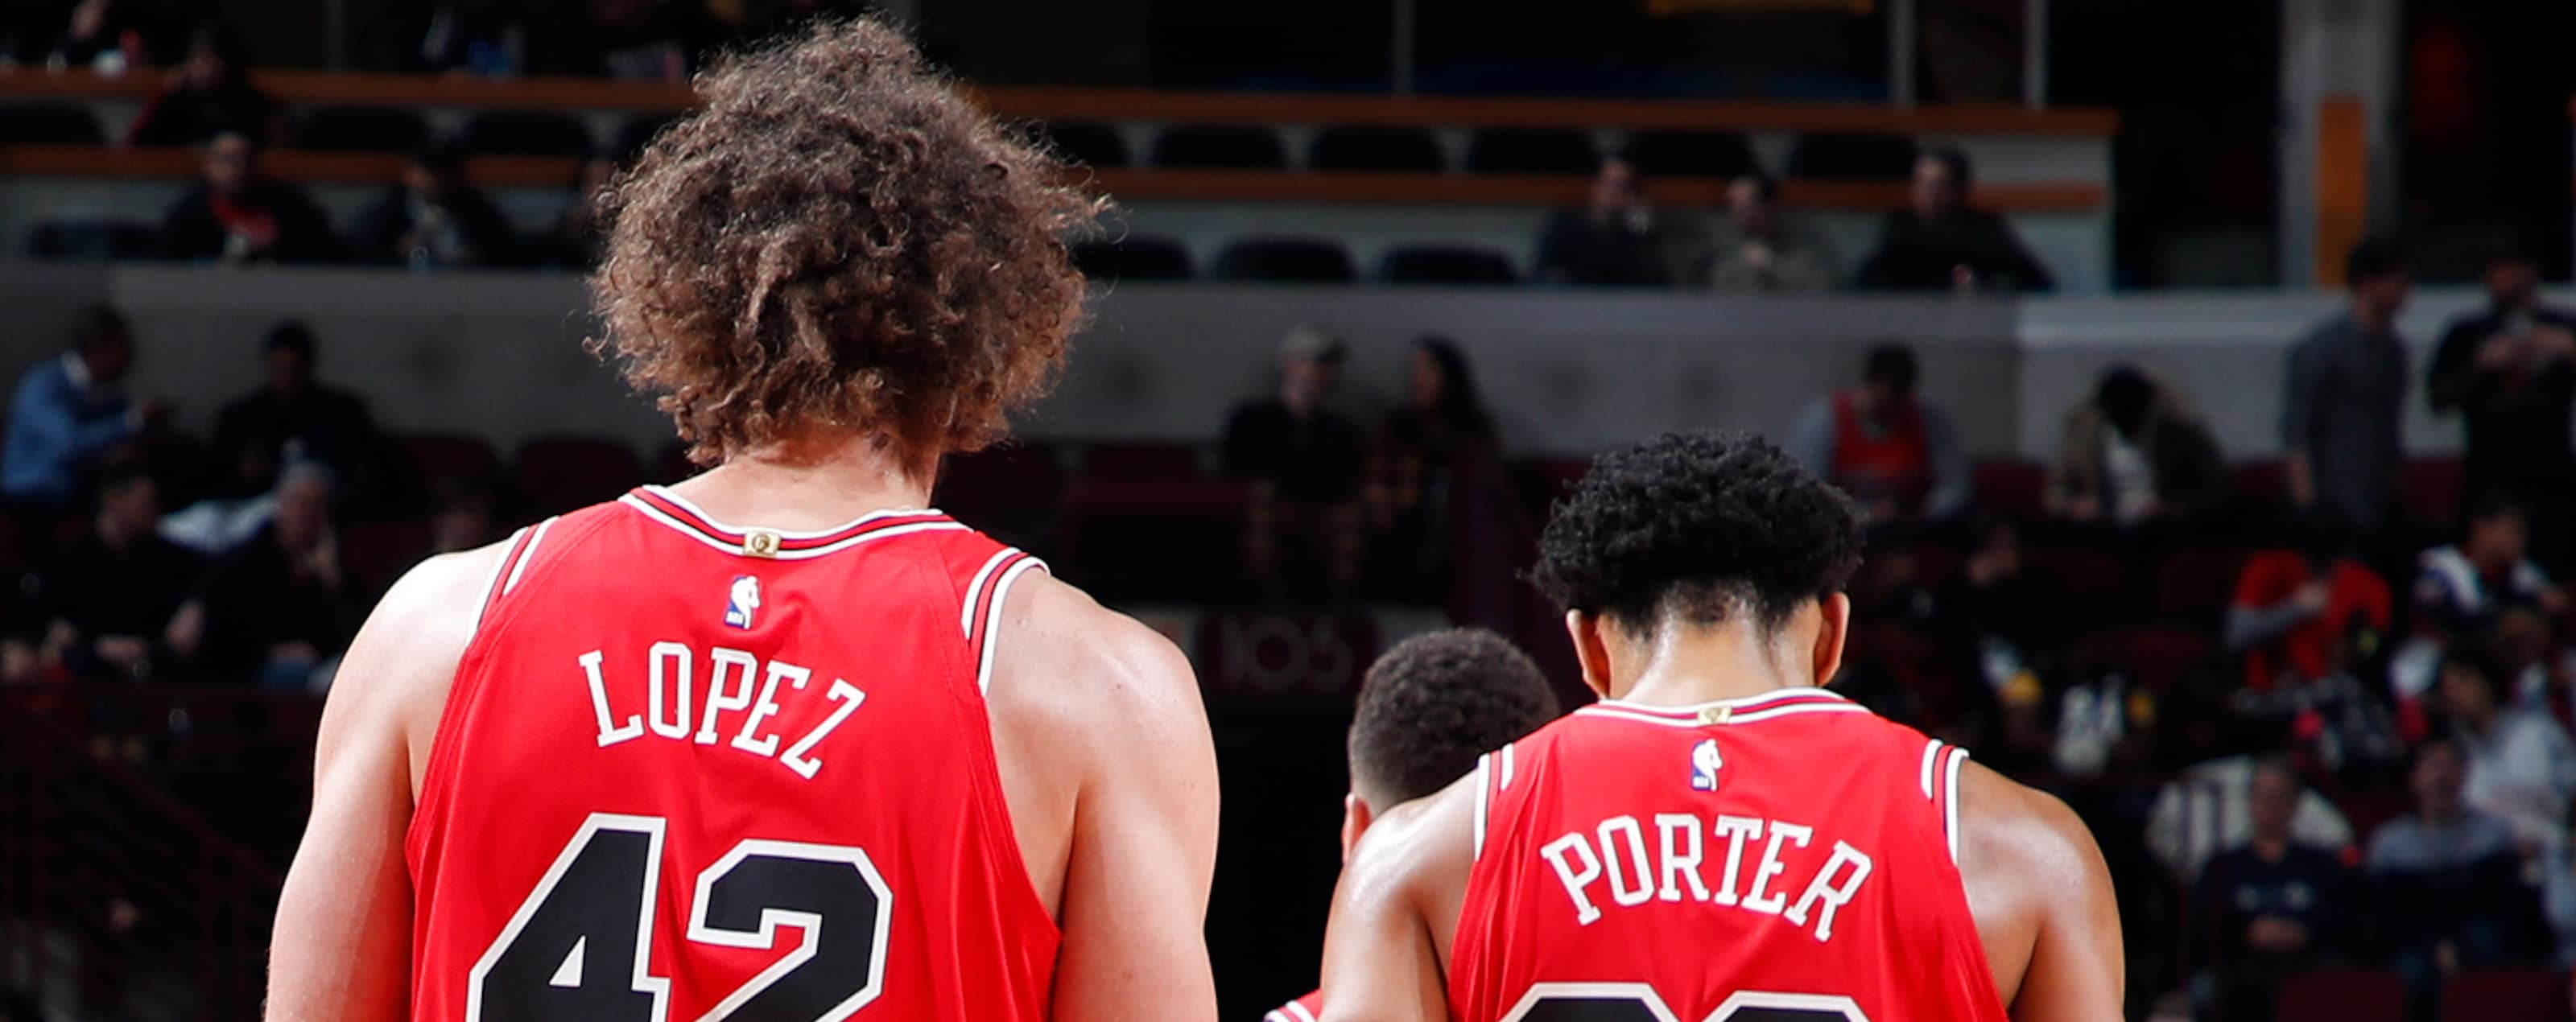 Robin Lopez #42 and Otto Porter Jr. #22 of the Chicago Bulls are seen during the game against the Washington Wizards on February 9, 2019 at United Center in Chicago, Illinois.